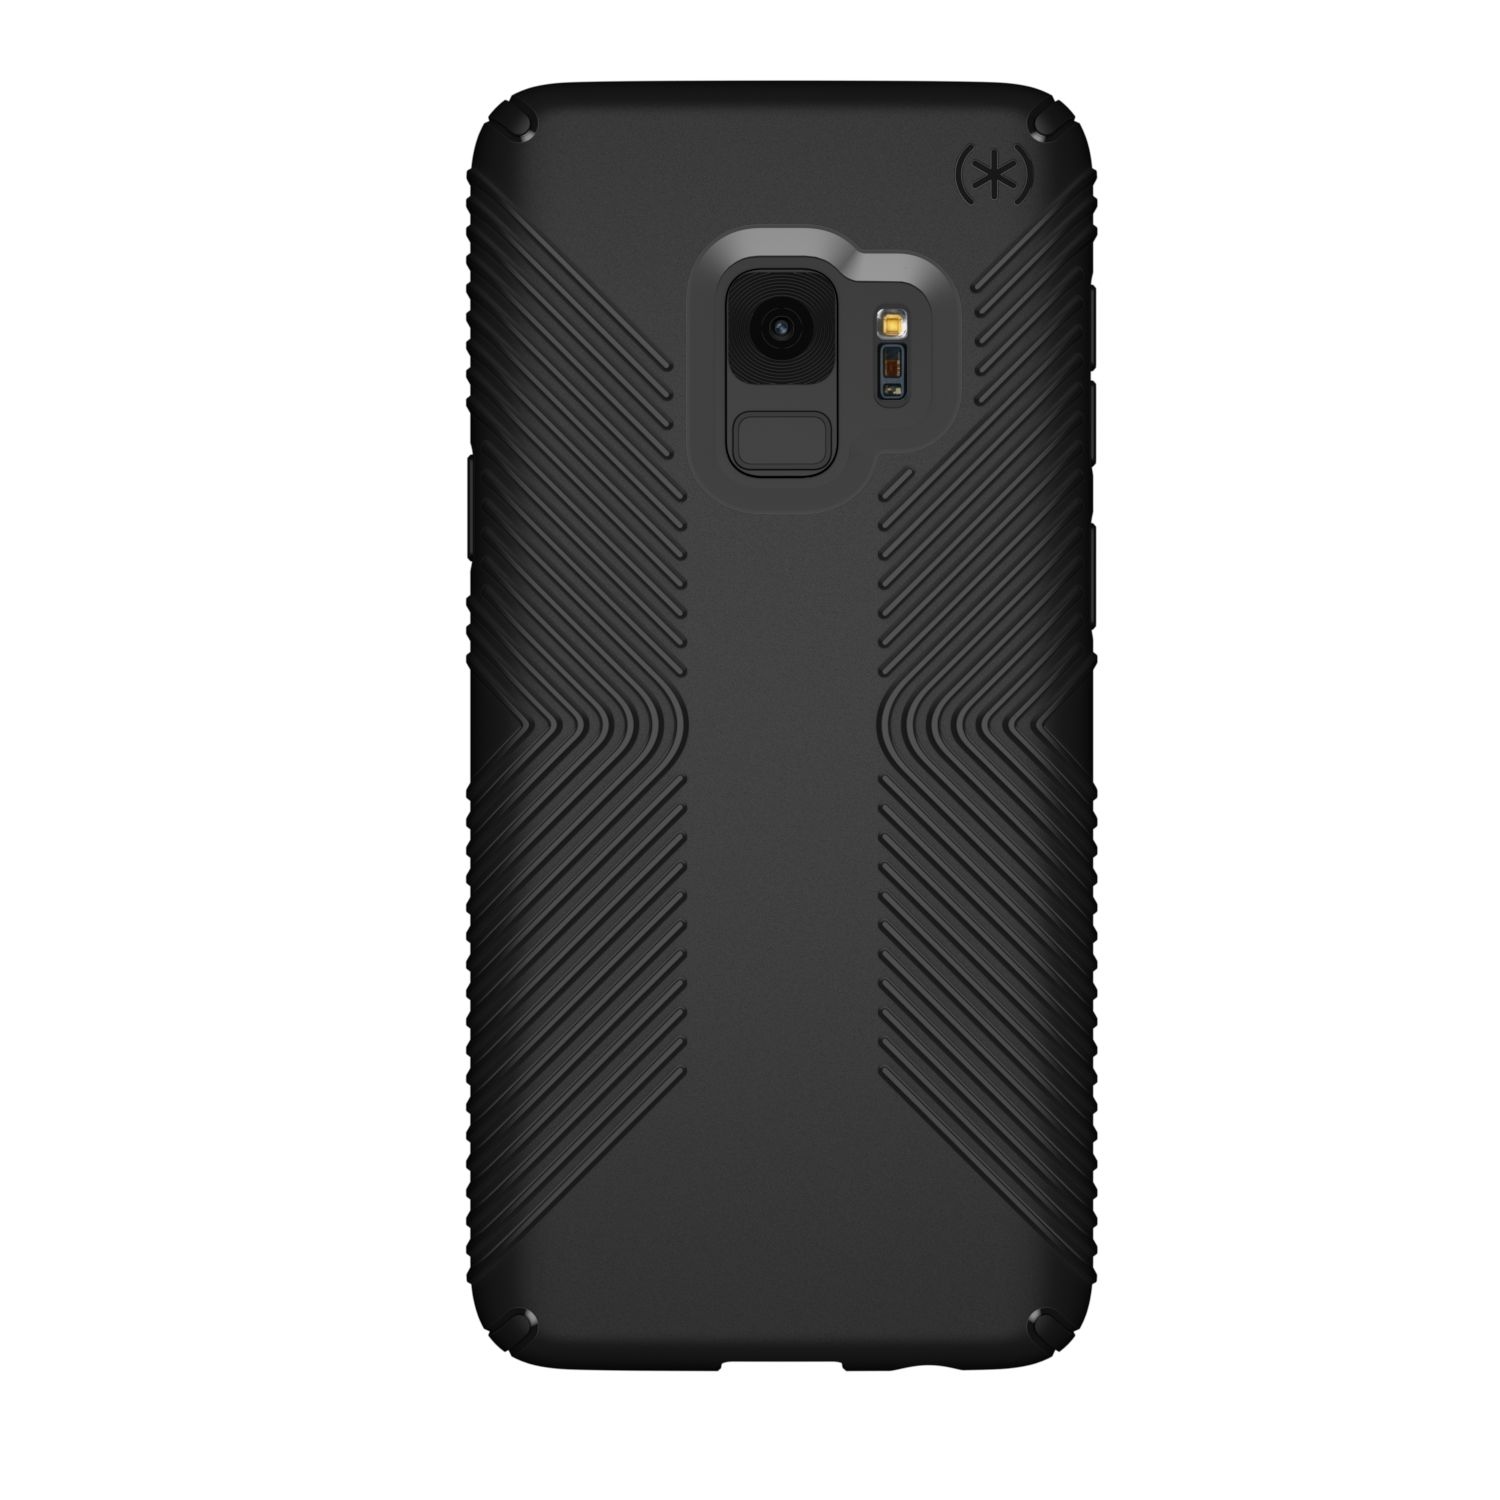 Протектор Speck Presidio Grip Samsung Galaxy S9 Black/Black, SPSS9GB